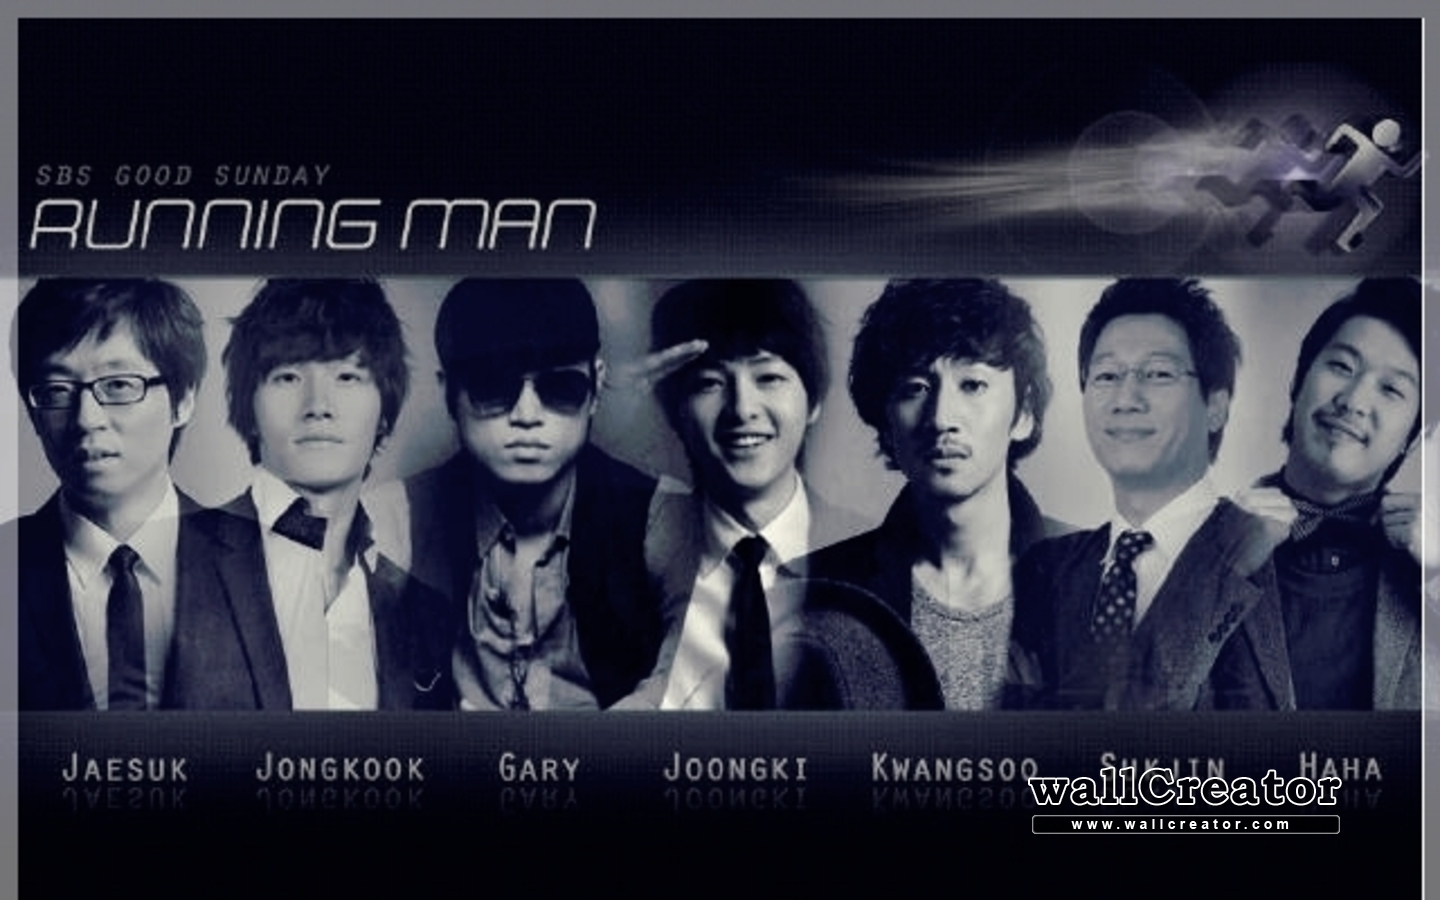 running man korean wallpaper hd, running man wallpaper korean, running man korean show wallpaper, running man korean wallpaper hd, sbs running man wallpaper, running man korean show wallpaper, best running man episode, running man bangkok episode, running man episode 63 bgm, background music running man episode 63, running man china episode, running man monday couple episode, running man cruise episode, running man christmas episode, running man love cruise episode, running man complete episode, running man complete episode eng sub, running man episode cast, running man couple race episode, running man cosplay episode, running man episode 30 dailymotion, running man episode 42 dailymotion, running man episode download, running man episode 41 dailymotion, running man episode 65 dailymotion, running man episode 32 dailymotion, running man episode 53 dailymotion, running man episode 45 dailymotion, running man episode 43 dailymotion, running man episode 36 dailymotion, funniest running man episode, favorite running man episode, running man full episode eng sub, running man funny episode, running man first episode, running man full episode list, running man episode 50 facebook, running man episode 1 full, running man episode 1 facebook, running man episode 74 facebook, running man episode guide, running man water gun episode, running man gary spy episode, running man gary episode 60, running man episode 1 guests, running man hong kong episode, running man hospital episode, running man hip hop episode, highest rated running man episode, running man episode 79 hd, running man haha house episode, running man episode 75 hd, running man episode 1 hd, jessica running man episode, running man tiger jk episode, running man korean episode, kshownow running man episode 74, running man episode 71 kshownow, running man episode 78 kshownow, running man hong kong episode, kshownow running man episode 70, running man episode 76 kshownow, kshownow running man episode 73, kshownow running man episode 69, kshownow running man episode 67, running man episode list, running man monday couple episode, running man art museum episode, running man episode 6 megavideo, running man episode 5 megavideo, running man most funny episode, running man new episode, running man new episode 65, list of running man episode, watch running man episode 70 online, watch running man episode 6 online, running man episode 4 online, running man episode 53 omona, running man episode 1 online, running man episode 76 online, running man episode 77 online, episode running man paling lucu, running man super power episode, running man episode 74 powers, running man pool episode, running man episode 70 preview, running man swimming pool episode, running man episode ratings, running man episode 74 raw, running man episode 76 raw, running man episode 60 recap, running man episode 78 raw, running man episode 70 raw, running man episode 80 raw, running man episode recap, highest rated running man episode, running man episode 71 raw, running man train episode, top running man episode, running man thailand episode, running man episode uee, running man victoria episode, running man episode wiki, watch running man episode 2, watch running man episode 68, watch running man episode 70, watch running man episode 76, watch running man episode 78, watch running man episode 67, running man water gun episode, watch running man episode 69, watch running man episode 72, running man yuri episode, running man episode 9 youtube, running man episode 12 youtube, running man episode 75 youtube, running man episode 4 youtube, running man episode 1 youtube, running man episode 6 youtube, running man episode 5 youtube, running man episode 13 youtube, running man episode 11 youtube, download running man dvd rip, download running man dance video, download running man dvd, dj lil man running man download, running man direct download, running man korean drama download, dead man running download, download running man all episodes, download running man a trak, download running man audiobook, download running man arnold schwarzenegger, download running man arnold, download running man audio, download running man a, download running man al stewart, download running man chinese sub, download running man city gods, download running man clip art, download running man clip, free download running man chinese sub, cara download running man, where can download running man, running man christmas special download, cara nak download running man, running man chinese subtitle download, download running man episodes, download running man ep 69, download running man episodes eng sub, download running man ep 63, download running man episode 72, download running man ep 73 eng sub, download running man episode 4, download running man ep 70, download running man episode 74, download running man episode 75, download running man free, download running man full episode eng sub, download running man full episodes, download running man full, download running man for iphone, download running man flash, download running man free mp3, download running man film, download running man for nokia 5800, how to download running man from isubs, download running man book, running man download blogspot, download running man hd, free download running man hd, how to download running man, how to download running man for free, running man hong kong download, how to download running man from kshownow, how to download running man episodes, download running man game, download running man gerry & the pacemakers, download running man isubs, download running man icon, download running man for iphone, download running man korean, download running man kshownow, download running man korean show, download running man kshow, download running man korean eng sub, download running man korean variety show, download running man korean ep 18, download running man korean variety, download running man korean with subtitles, free download running man korean, dj lil man running man download, running man eng sub download link, running man latest episode download, running man episode list download, running man single link download, download running man mp4, download running man movie, download running man movie free, download running man mp3, download running man movie online, download running man movie soundtrack, dj lil man running man download, download running man online, download running man ost, download running man nike+ original run, download running man nike, download running man now we are free, download running man nokia 5230, download running man nike+ original run a-trak, download running man nokia 5800, download running man nokia n95, cara nak download running man, download running man pdf, running man qvod download, download running man raw, download running man richard bachman, download running man sub, download running man snsd eng sub, download running man subtitle, download running man snsd, download running man show,, download running man season 1, download running man soundtrack, download running man sbs, download running man soundtrack free, download running man symbol, download running man trak, download running man tutorial, download running man trailers, download running man theme, where to download running man, where to download running man eng sub, how to download running man from isubs, download the running man book, running man tv series download, how to download running man from kshownow, download running man vietsub, download running man video, download running man variety show, download running man variety, download running man vector, download running man korean variety show, download running man with eng sub, download running man with english sub, download running man with subs, download running man with eng sub ep 5, free download running man with eng sub, where to download running man episodes, where can download running man, where to download running man korean, download running man zune, video running man dance, video running man dance moves, running man video download, music video running man dance, video running man arnold, video running man al stewart music video man running backwards, running man video clip, video running man funny, music video man running on fire, running man facebook video, running man video game, video running man ep 10 eng sub, video running man eng sub, video running man ep 12, video running man ep.14, video running man ep 17, mc hammer running man video, video running man korean, video running man korea, running man music video, music video man running on fire, music video man running backwards, mc hammer running man video, running man dance move video, music video running man dance, music video man running on fire, video of the running man, man running on water video, video running man something good, utah saints running man video, the running man video game, video of the running man, video running man utah saints, man running on water video,